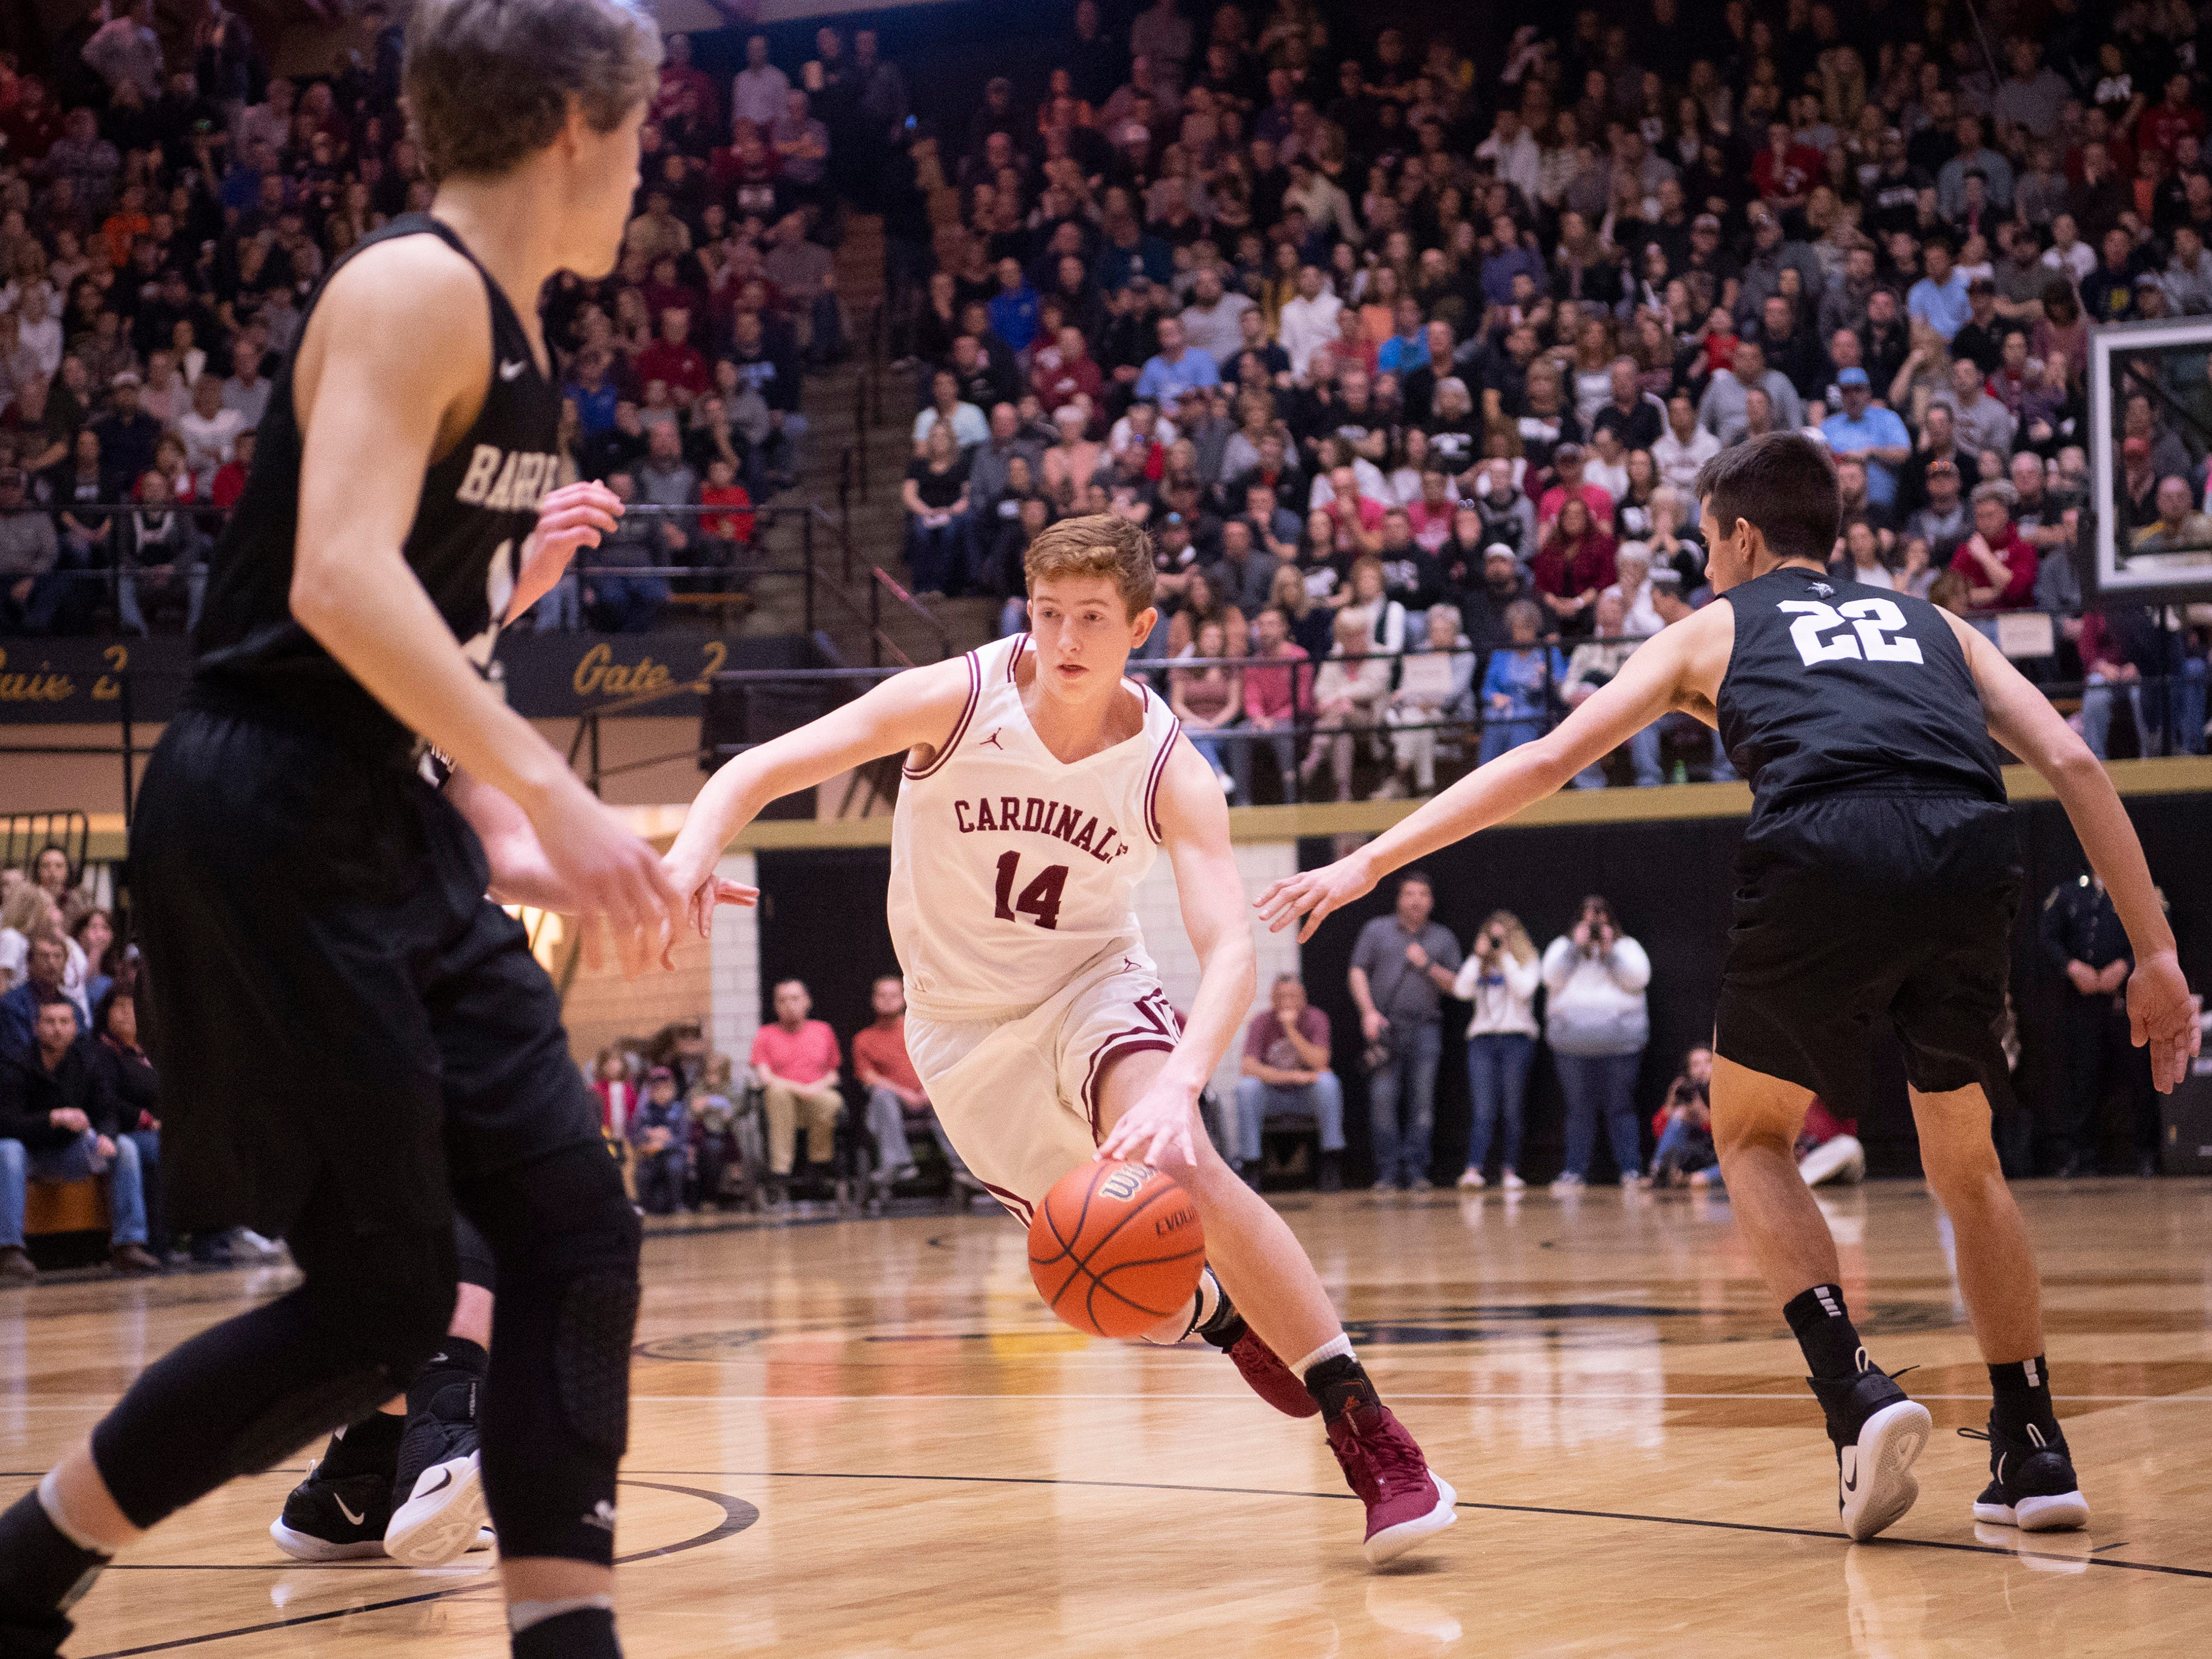 Bloomfield's Andrew Shelton (14) drives past Barr-Reeve's Brycen Graber (22) during the 1A Boys Indiana Semi-State Basketball Tournament at the Hatchet House in Washington, Ind., Saturday afternoon.